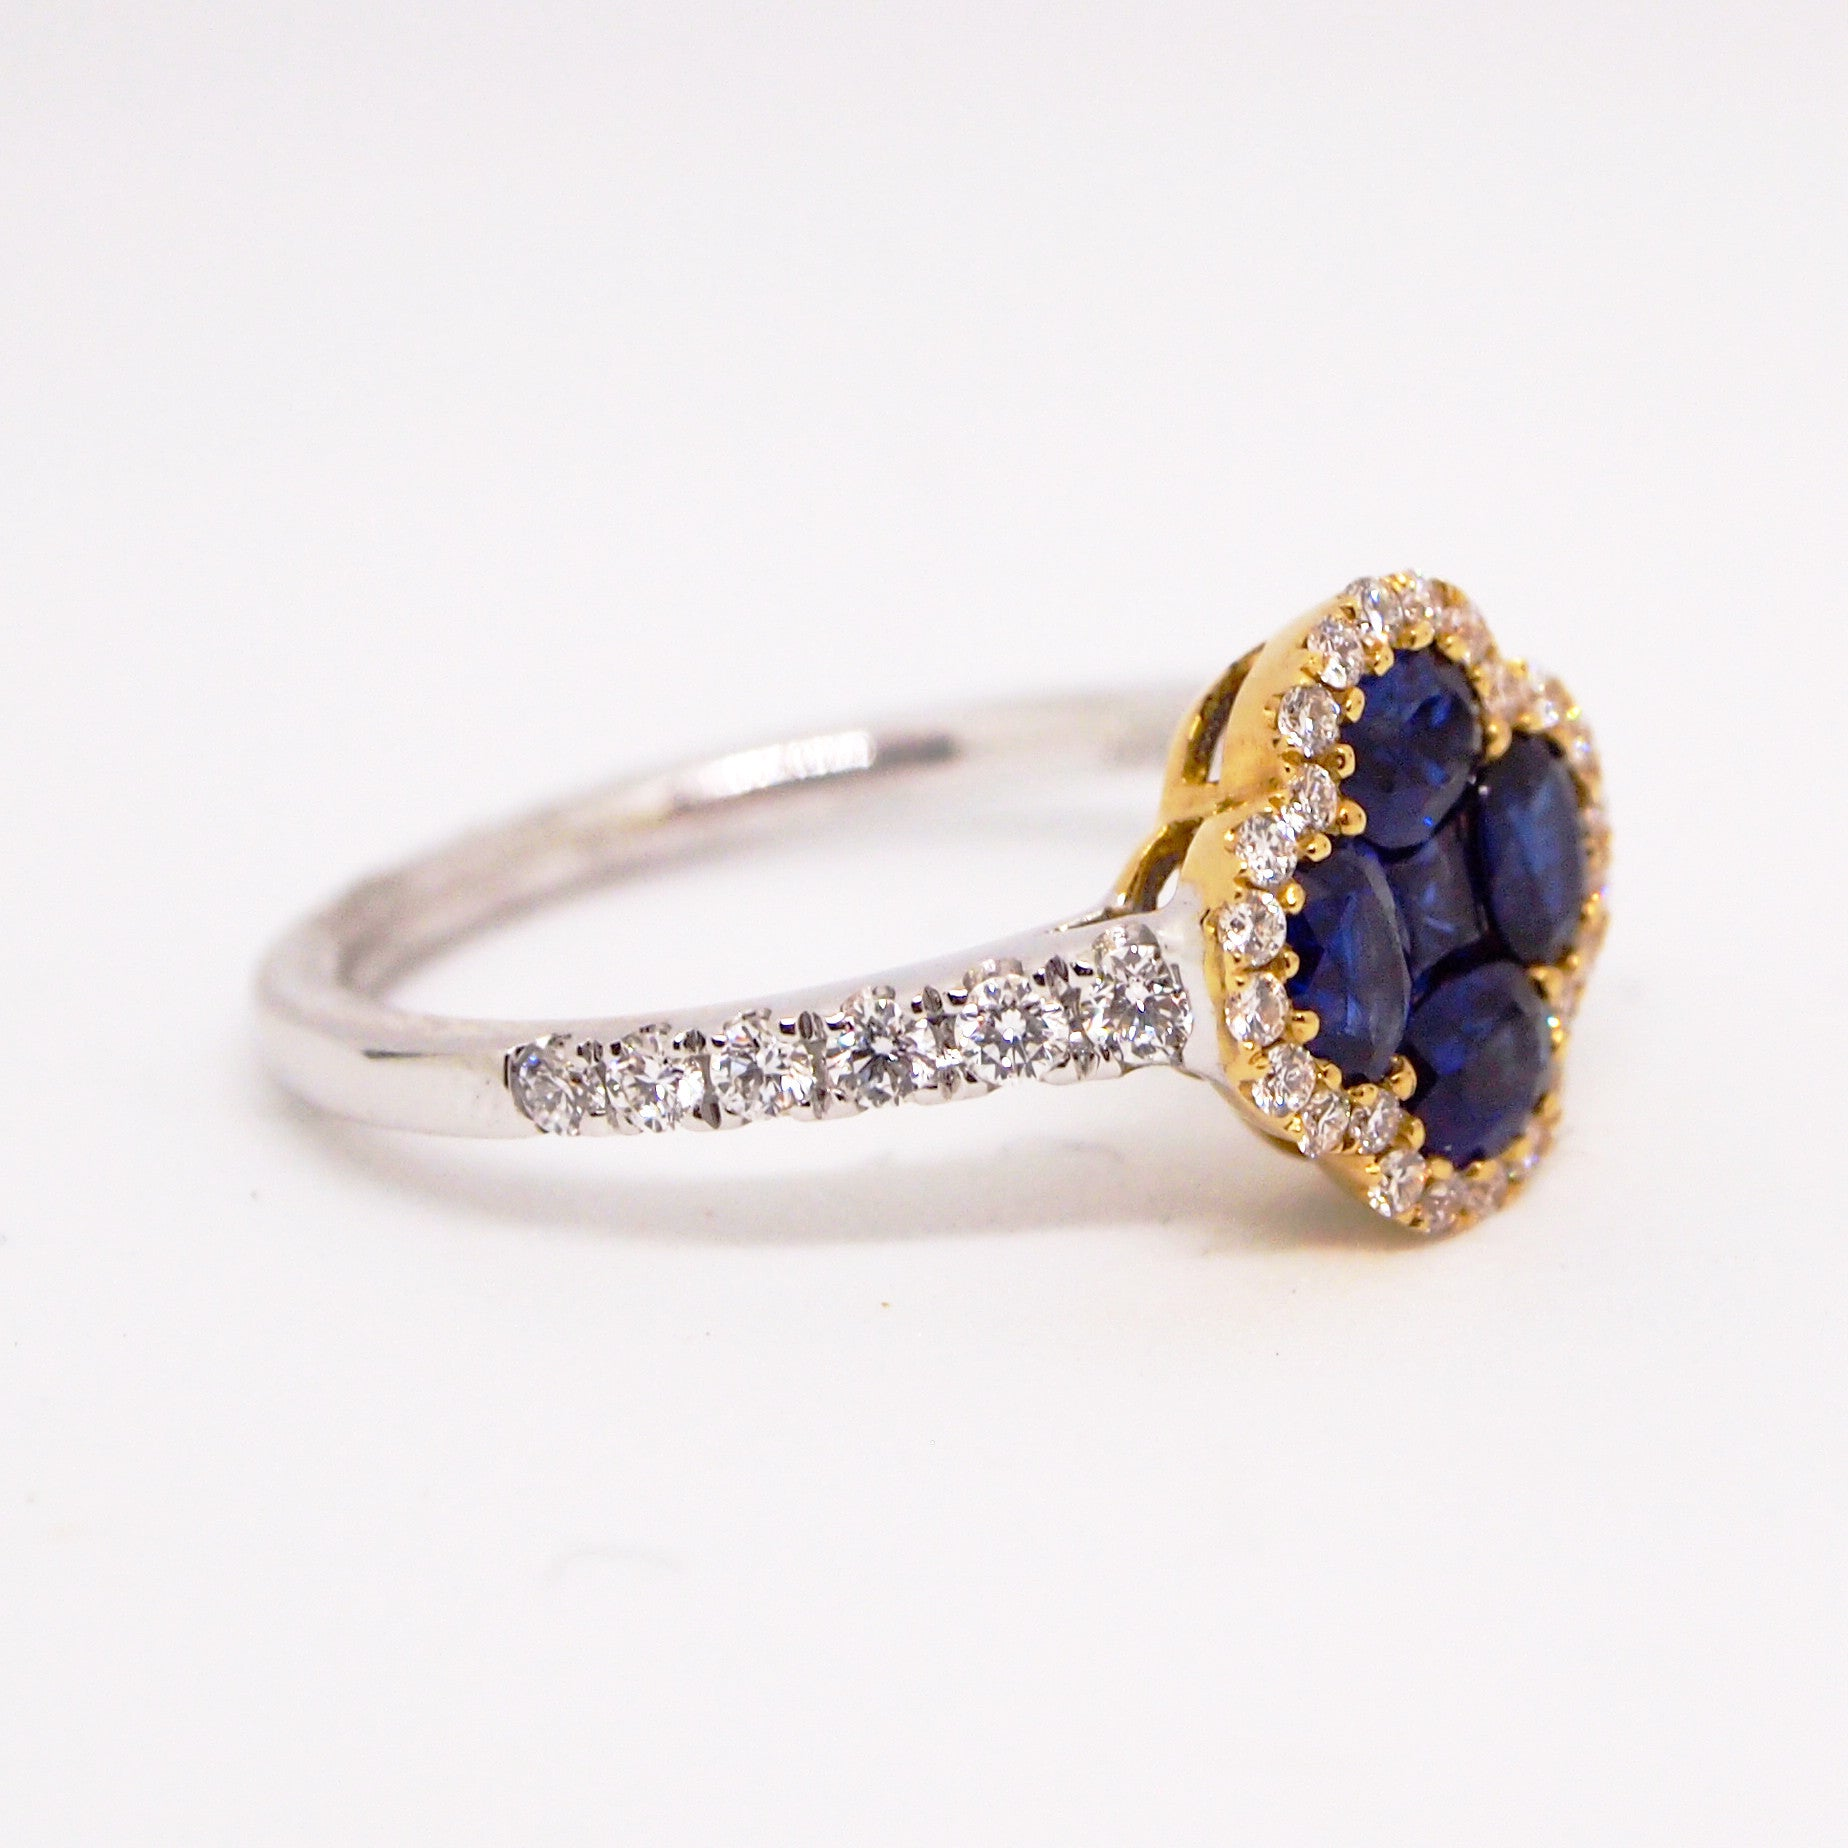 18K White And Yellow Gold Sapphire And Diamond Clover Ring